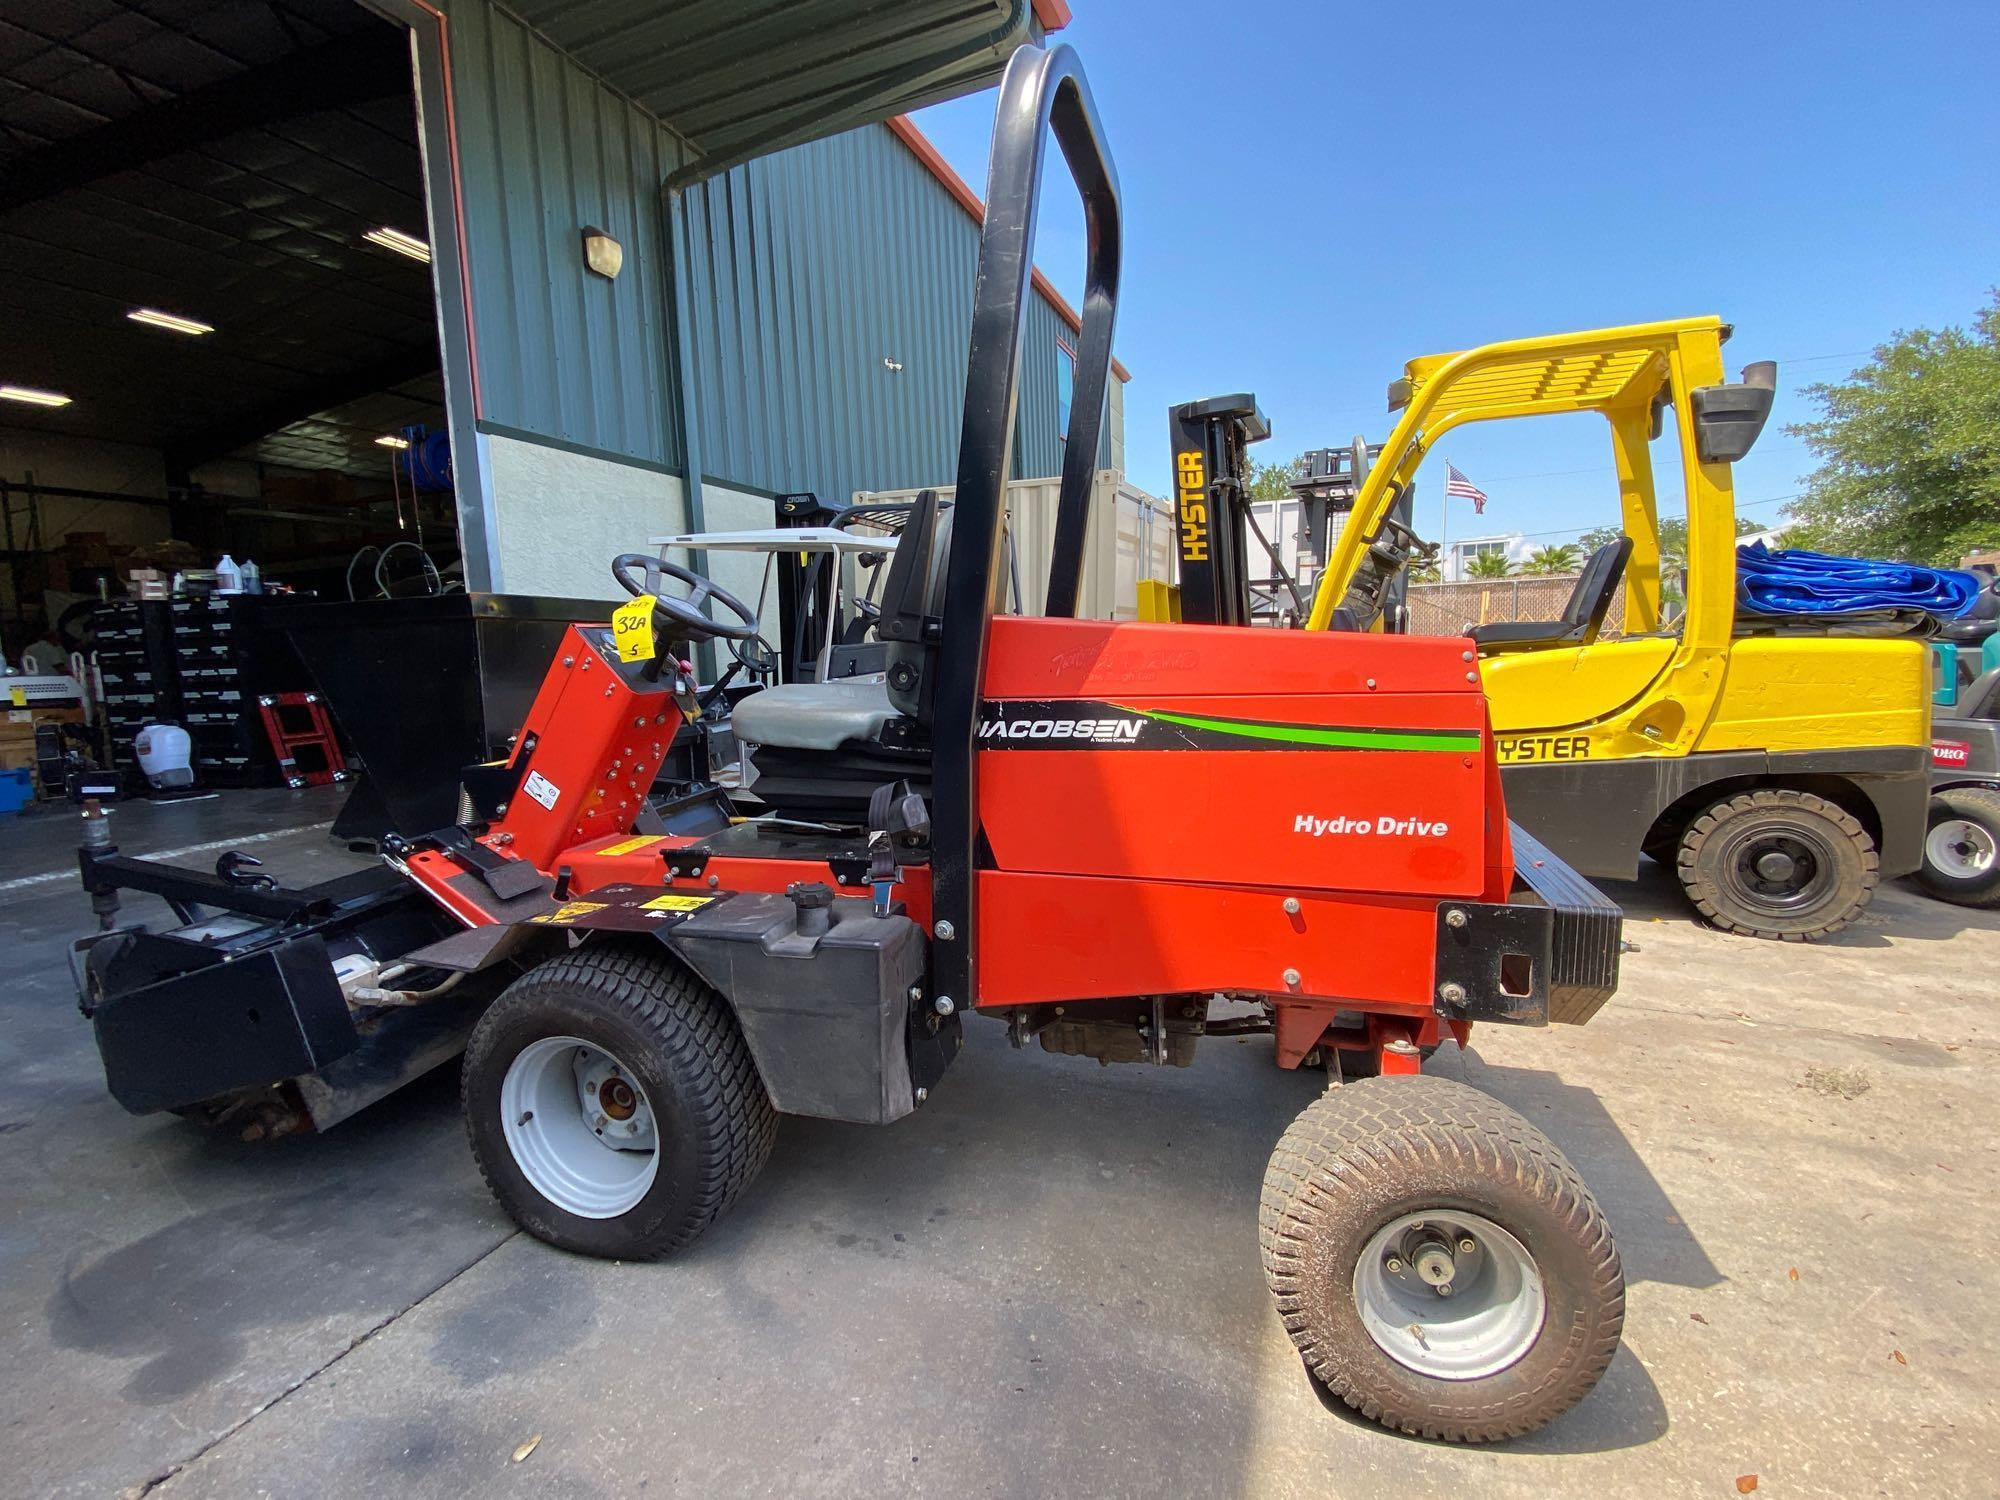 JACOBSON HYDRO DRIVE MOWER, GAS POWERED, MODEL 628D, RUNS AND OPERATES - Image 4 of 6